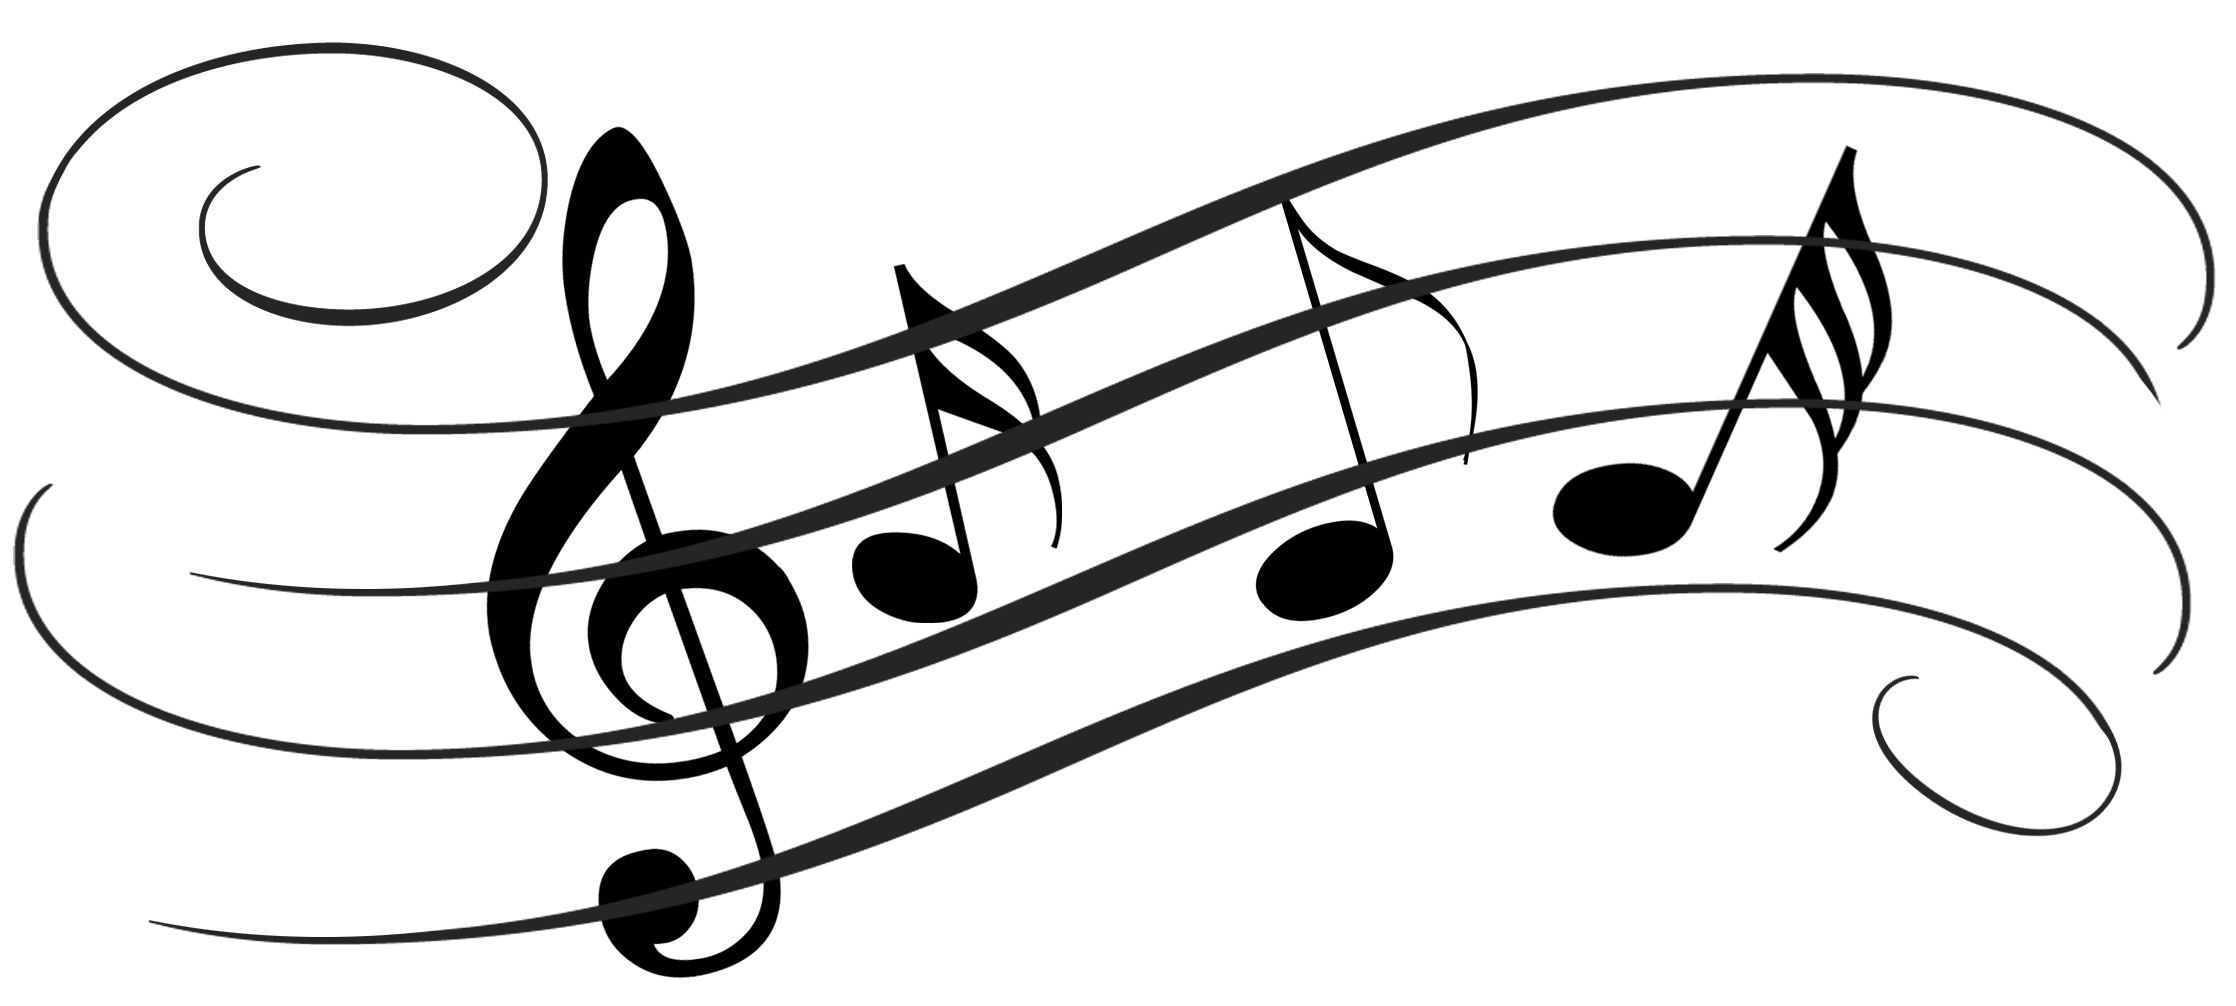 jpg royalty free download Music notes black and. Note drawing